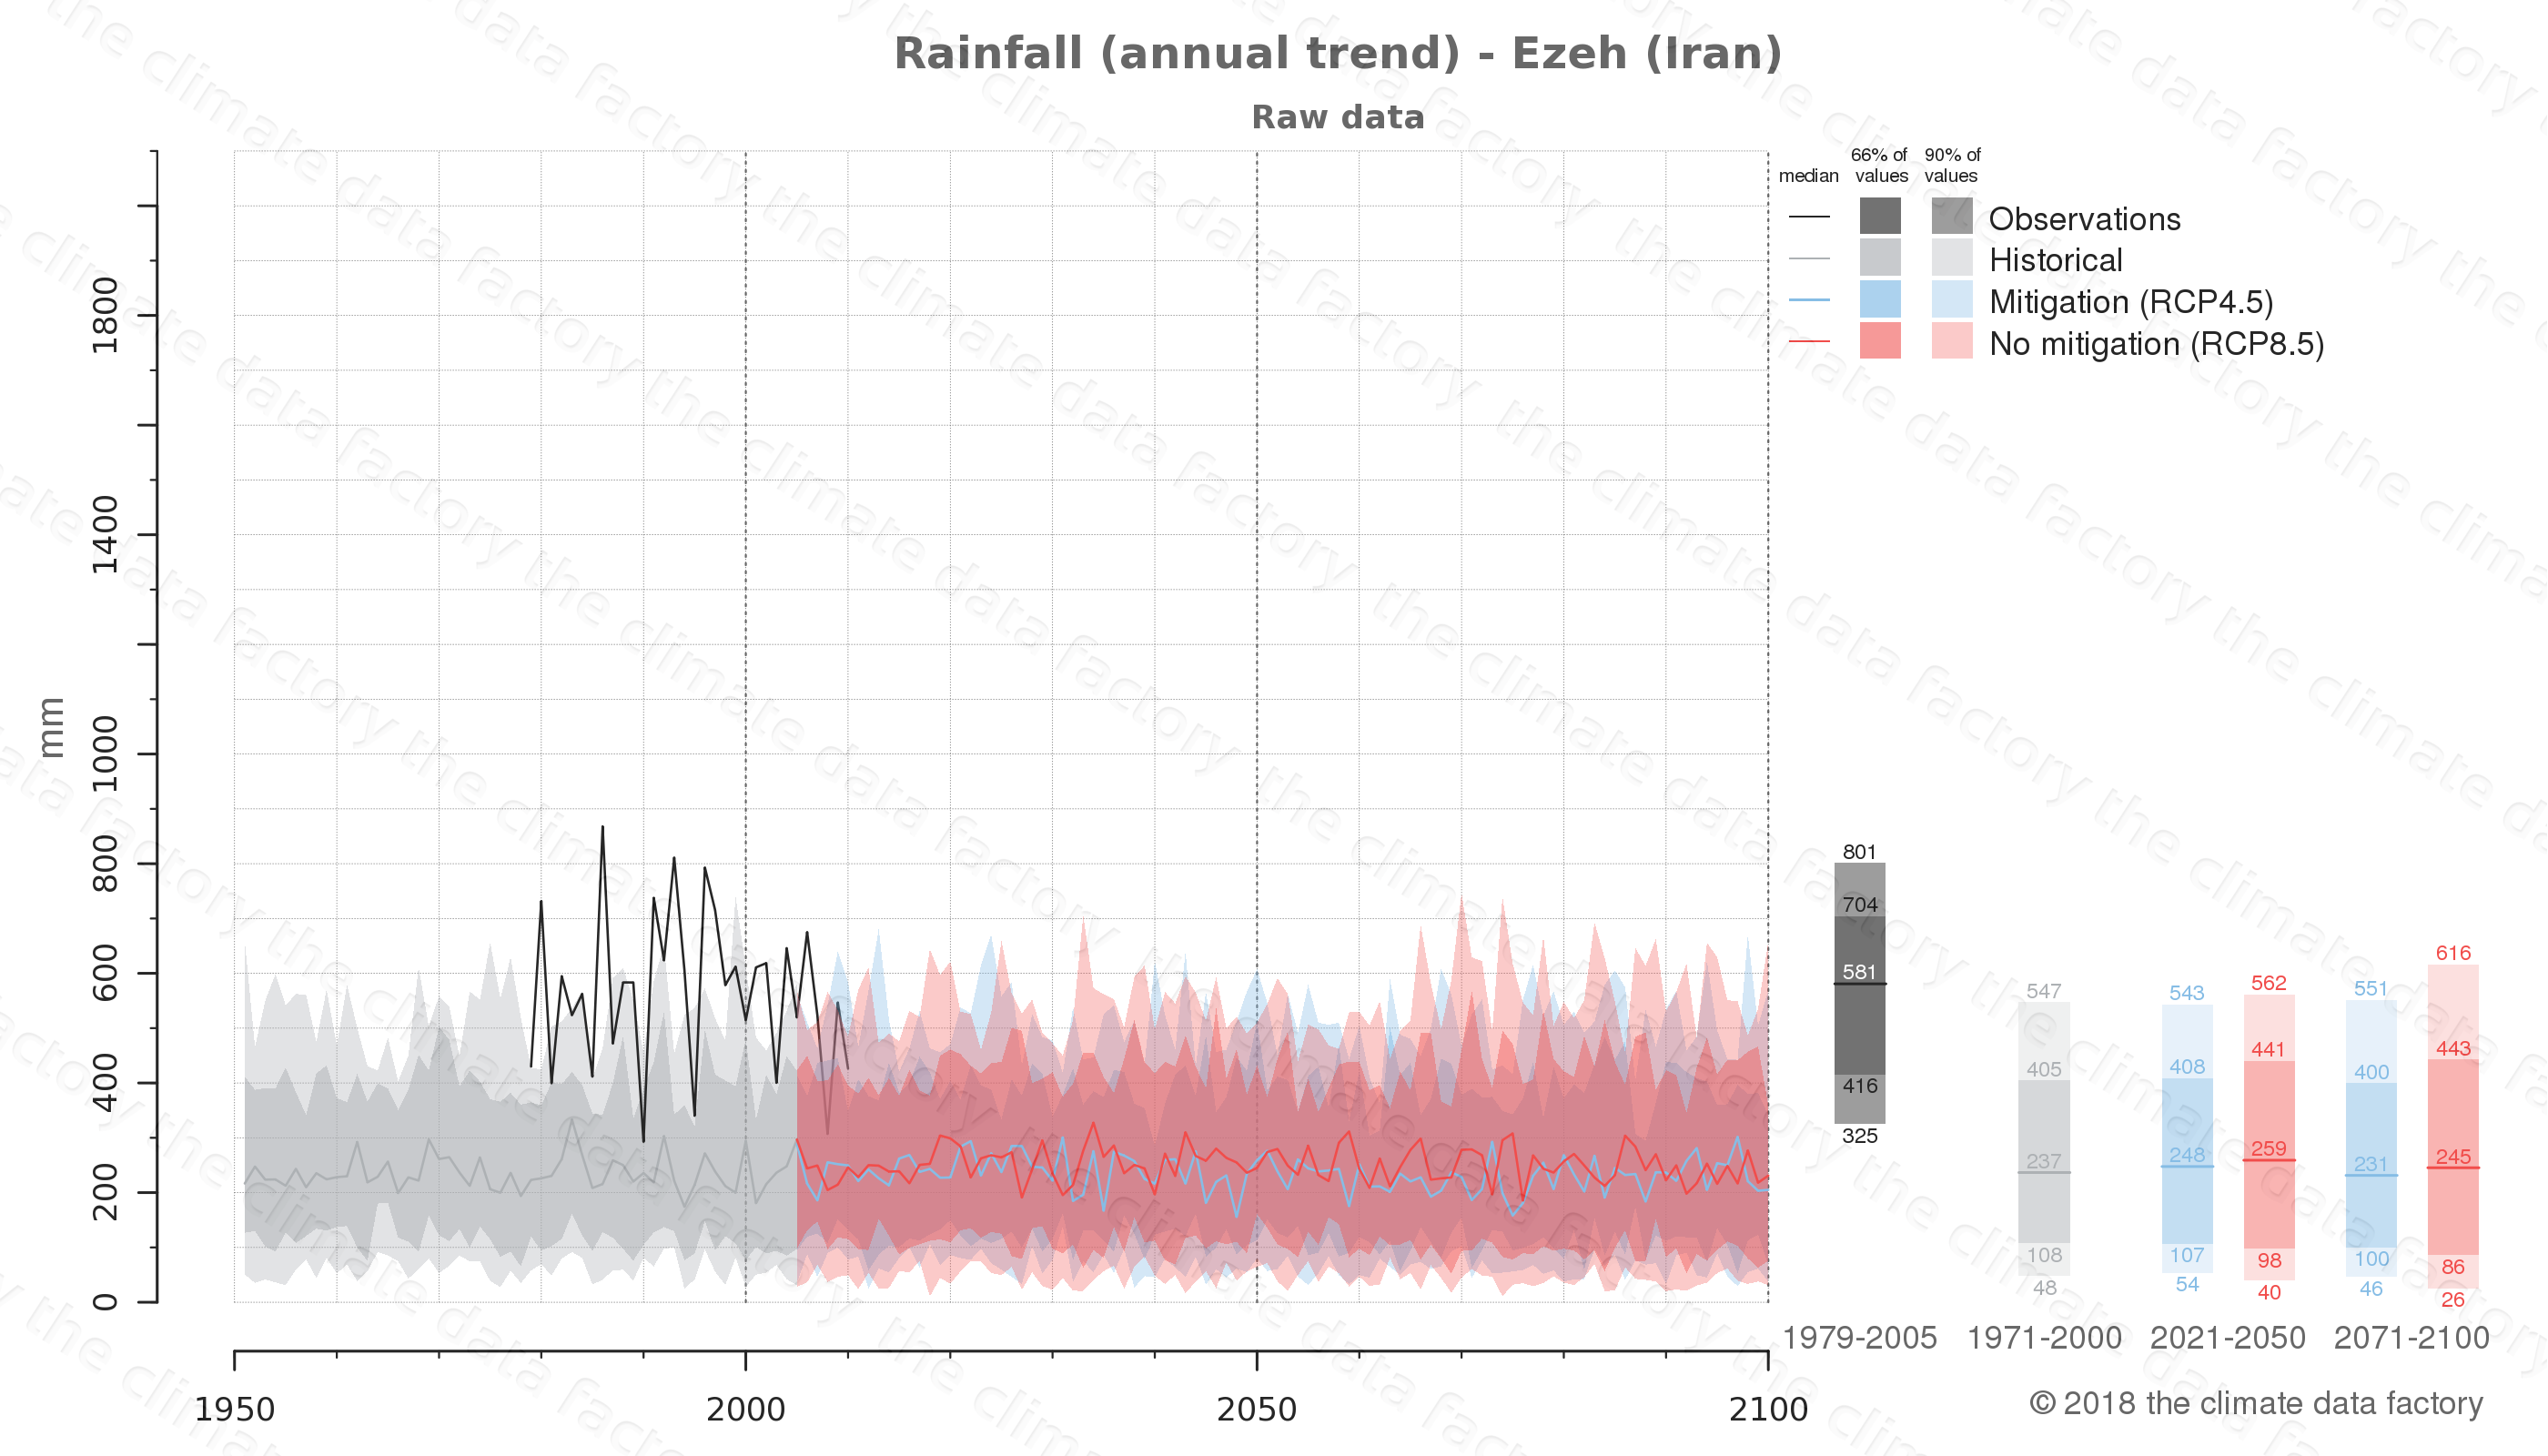 climate change data policy adaptation climate graph city data rainfall ezeh iran